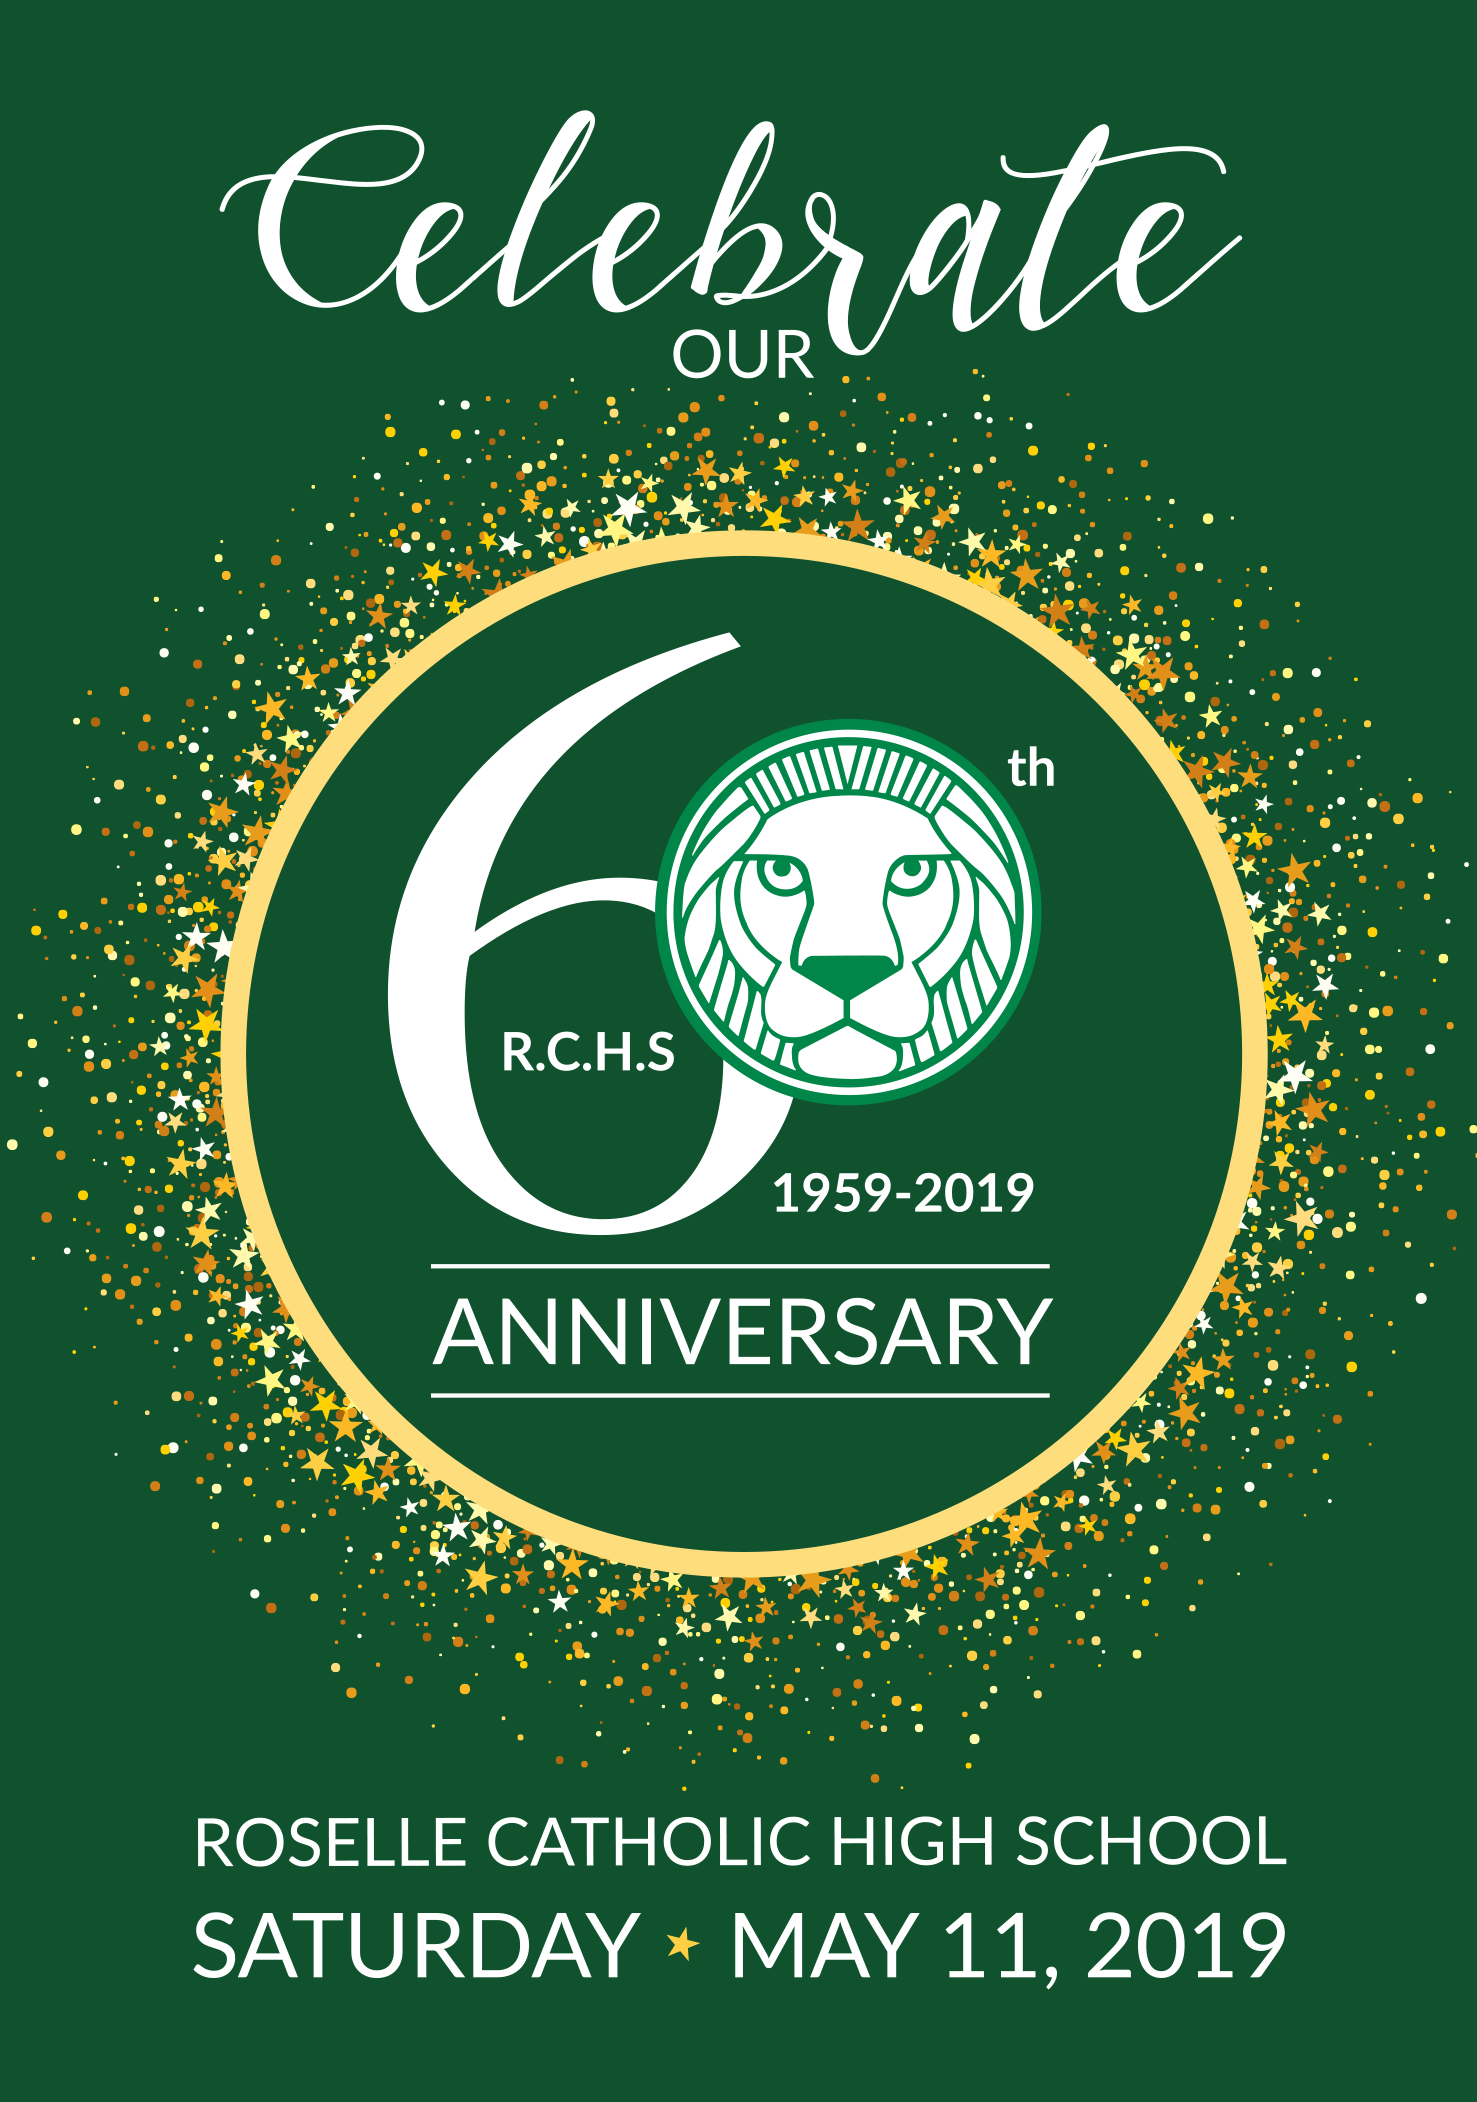 May 11, 2019 at 5:30pm - Roselle Catholic High SchoolJoin us for an evening of drinks, dinner, live entertainment and a celebration of Roselle Catholic High School.We will reflect on 60 years of greatness and look ahead to a future filled with unlimited possibilities.